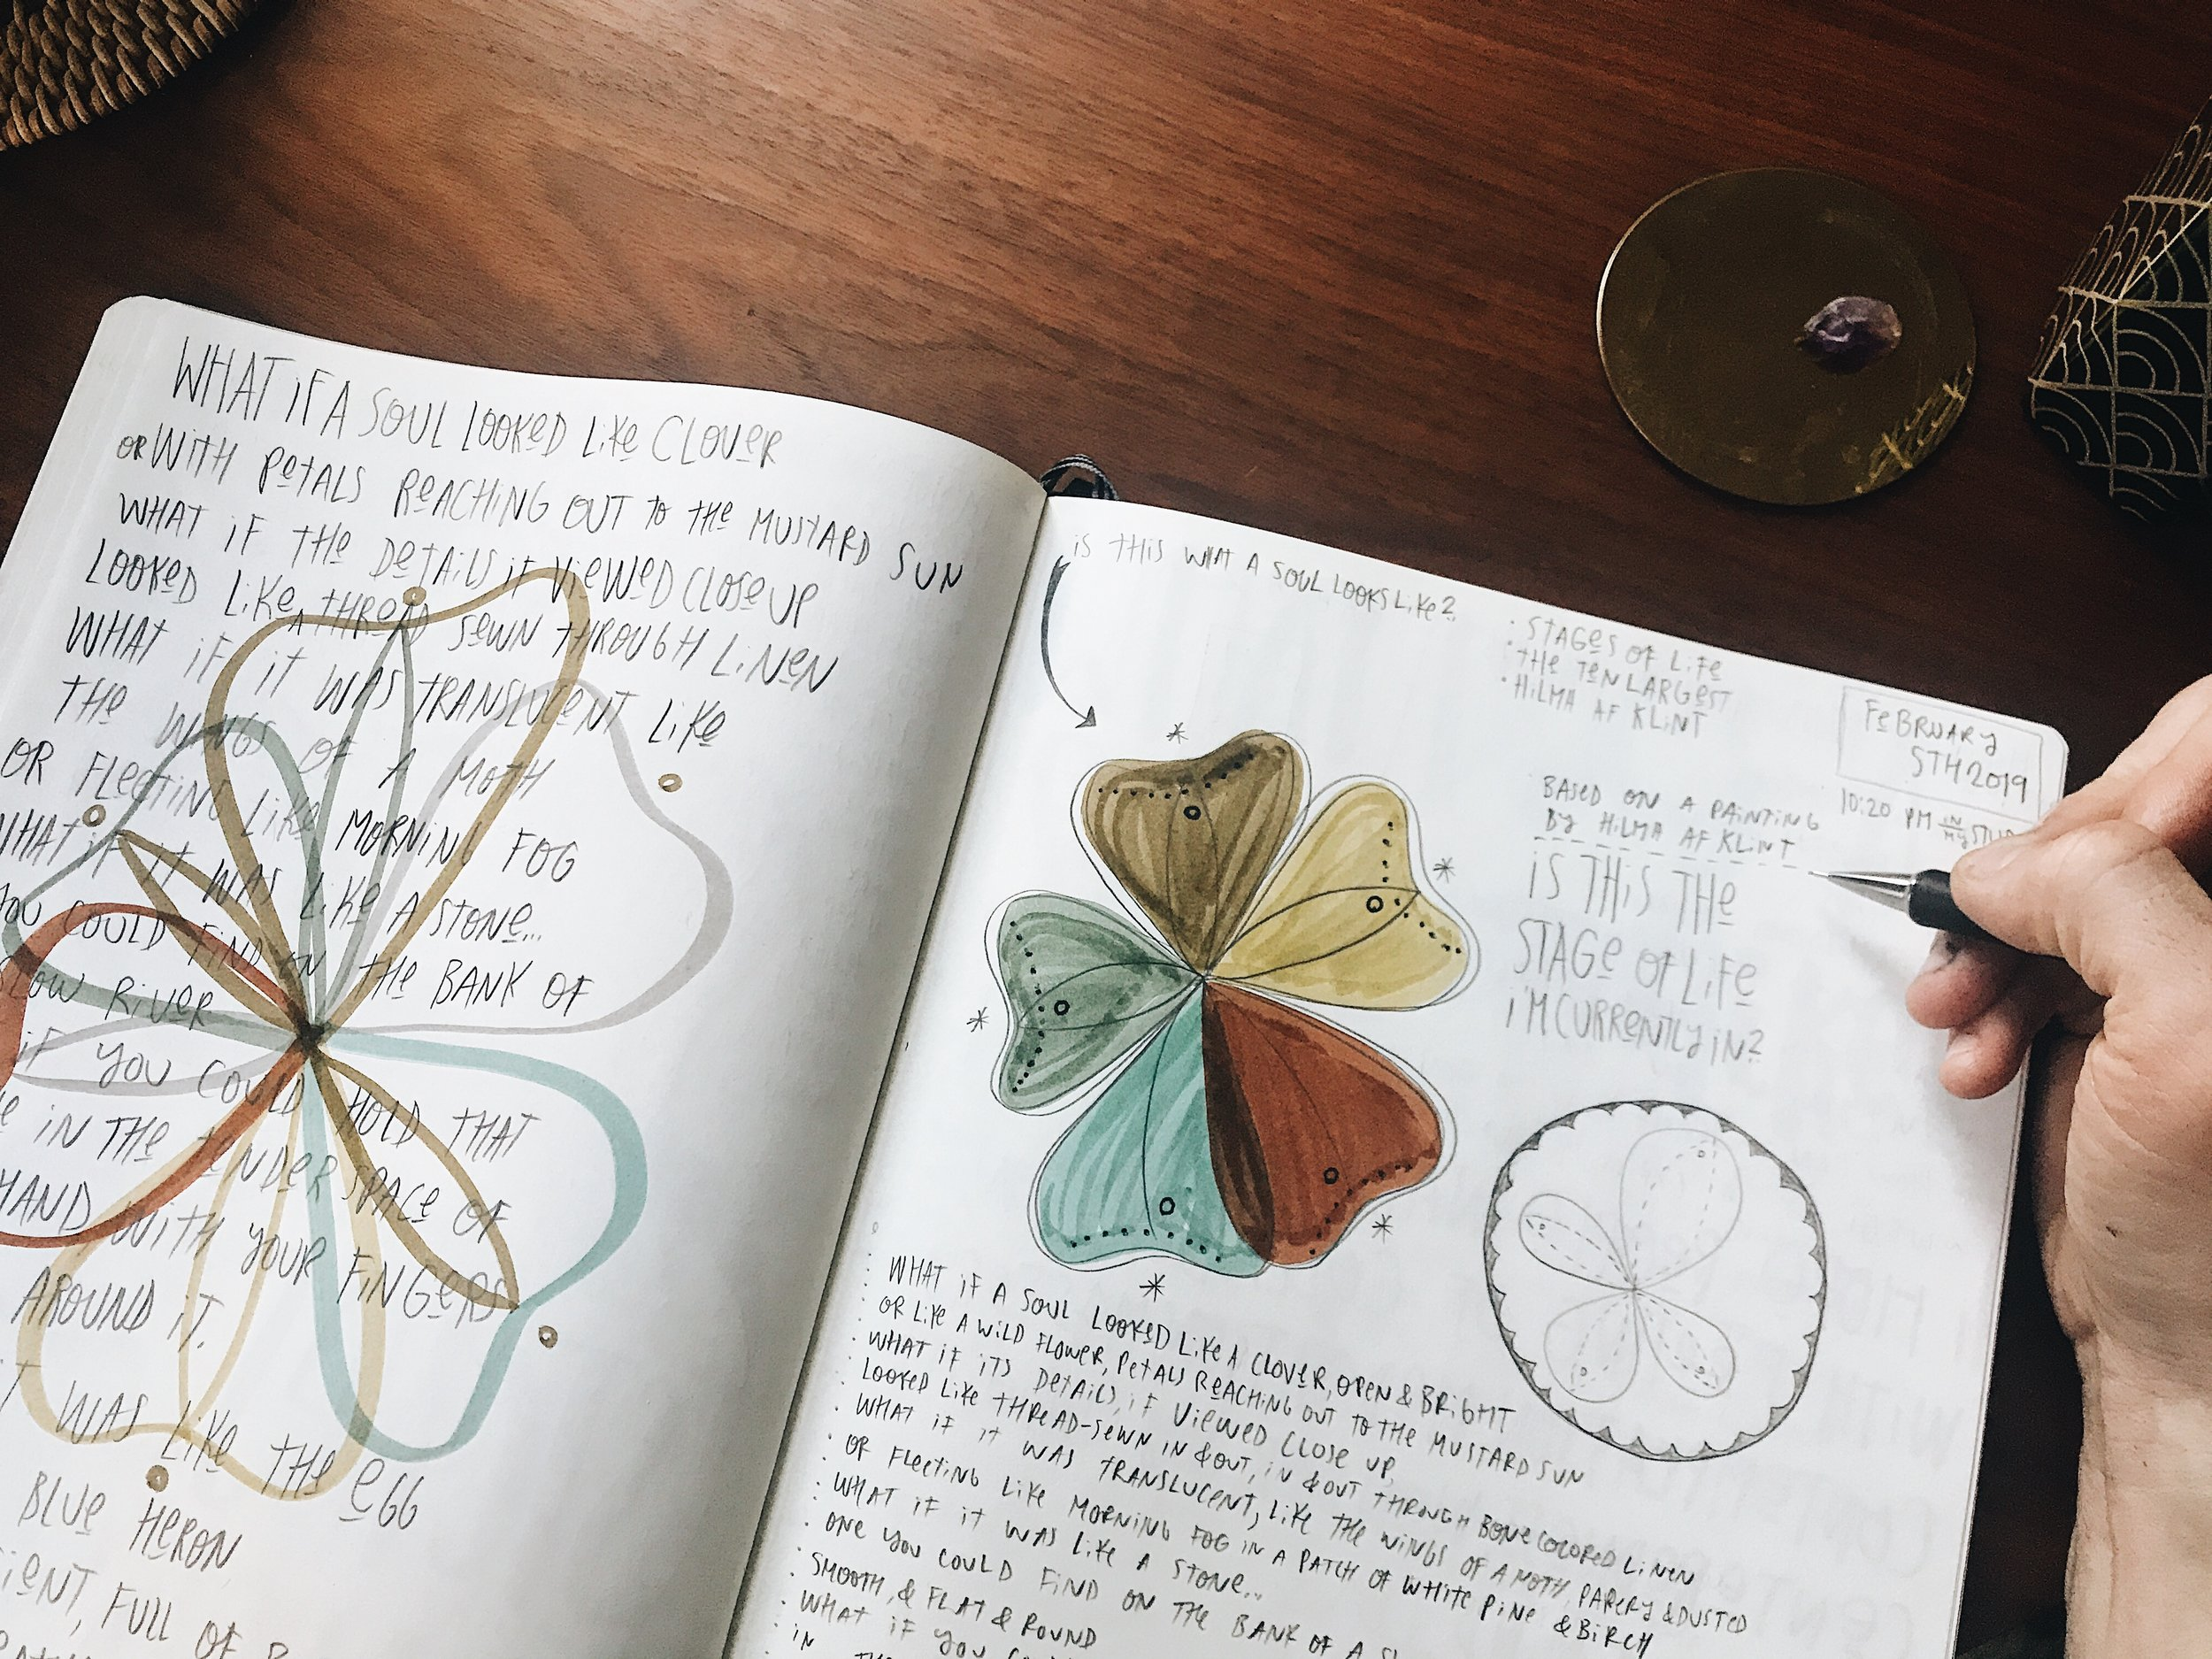 Artwork and Poetry in my WTQL Journal inspired by the work of Oliver and af Klint